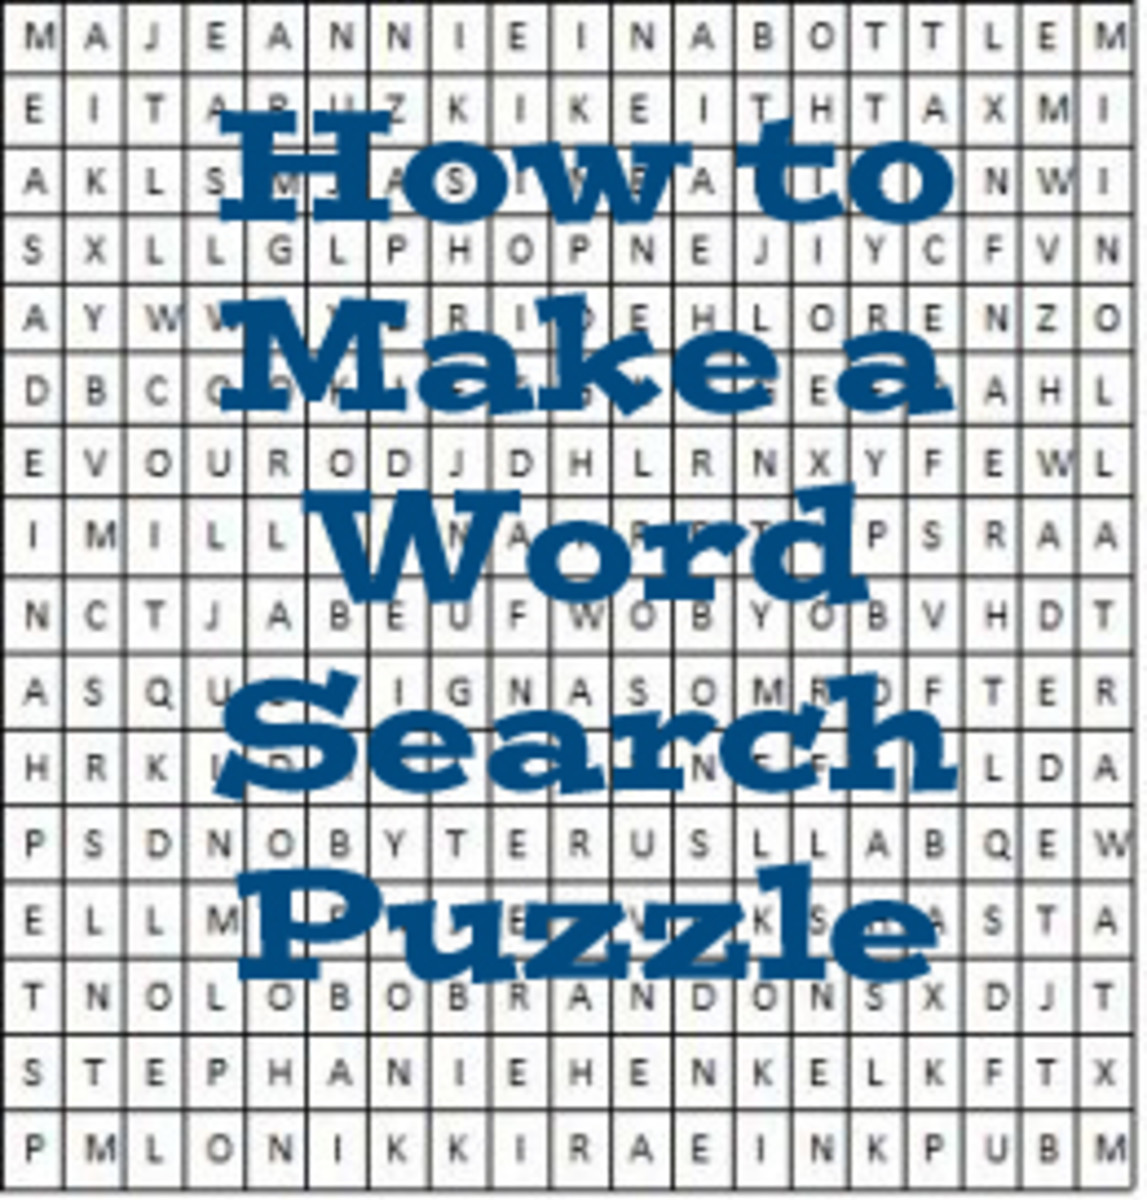 Create your own word search puzzle using words that you choose. It's easy!